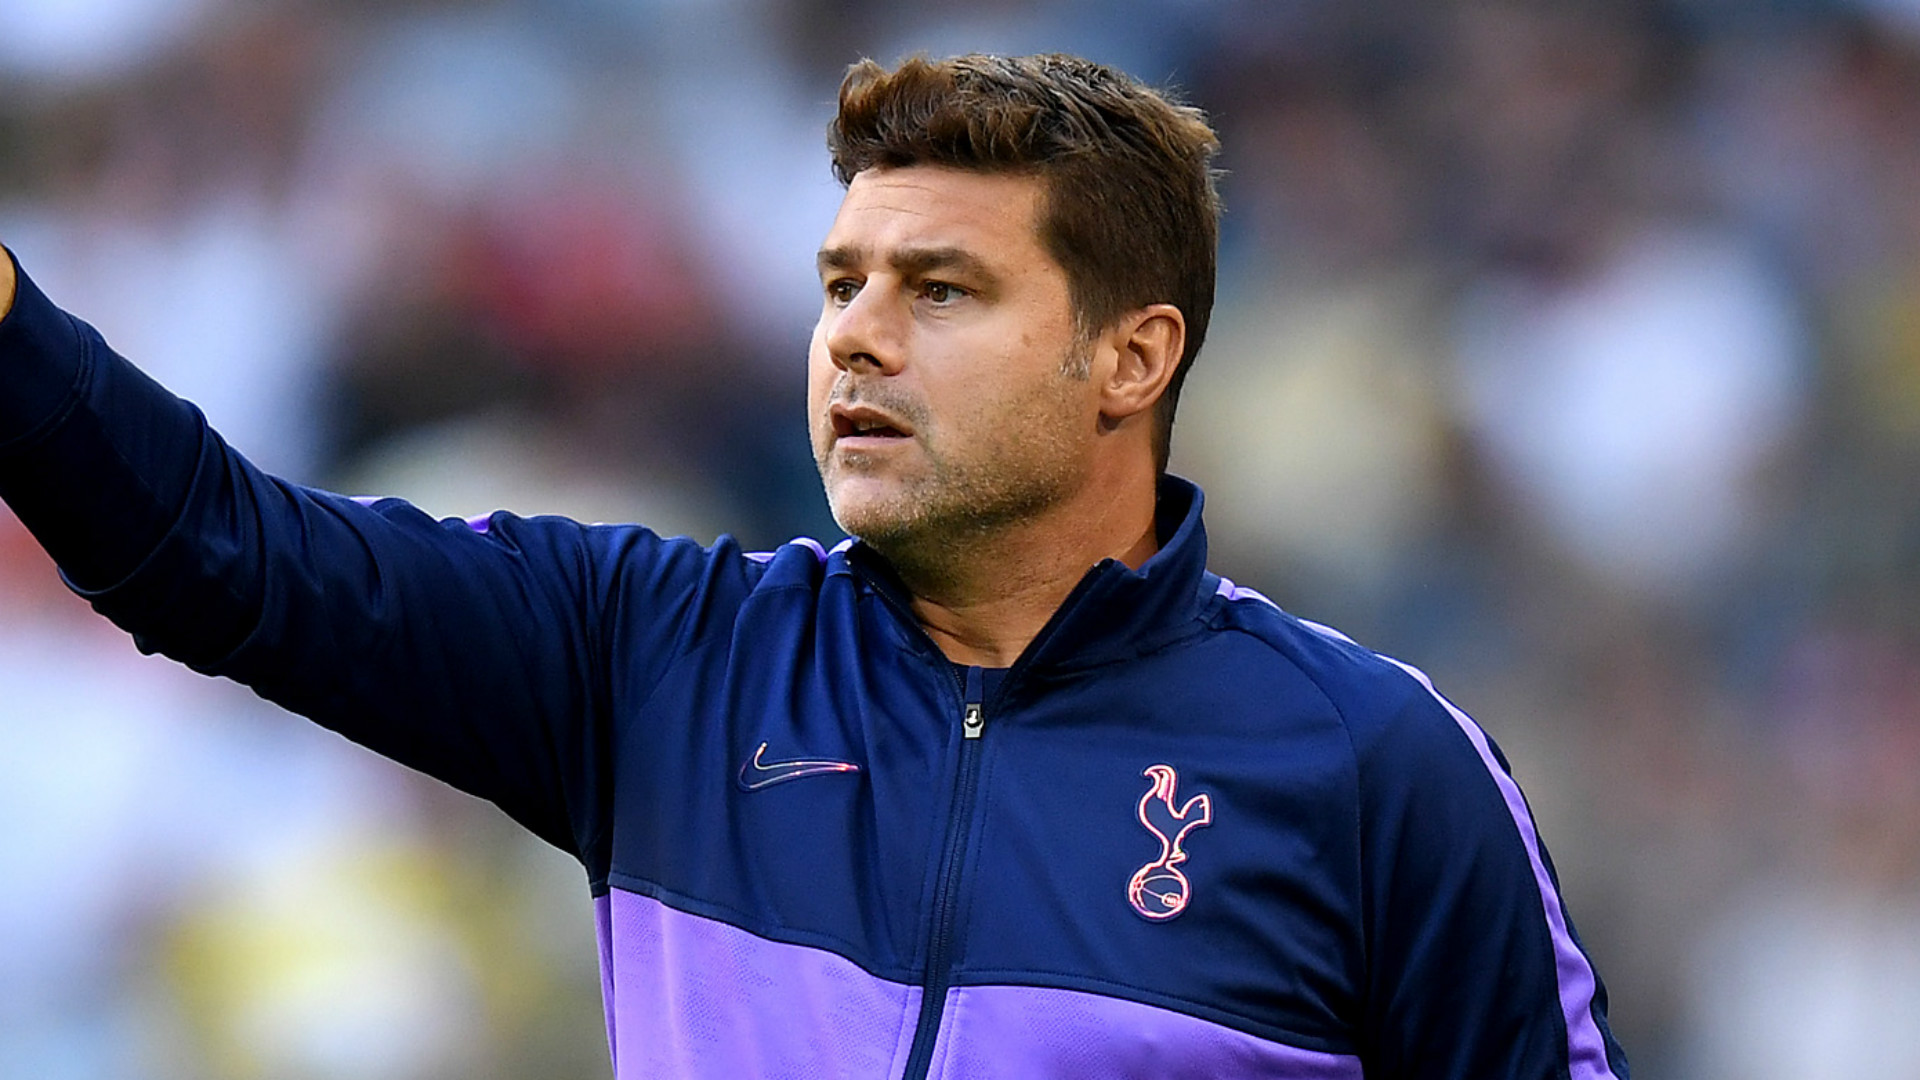 'We have to go back!' - Pochettino hopes Premier League will reverse 'massive mistake' of early transfer deadline